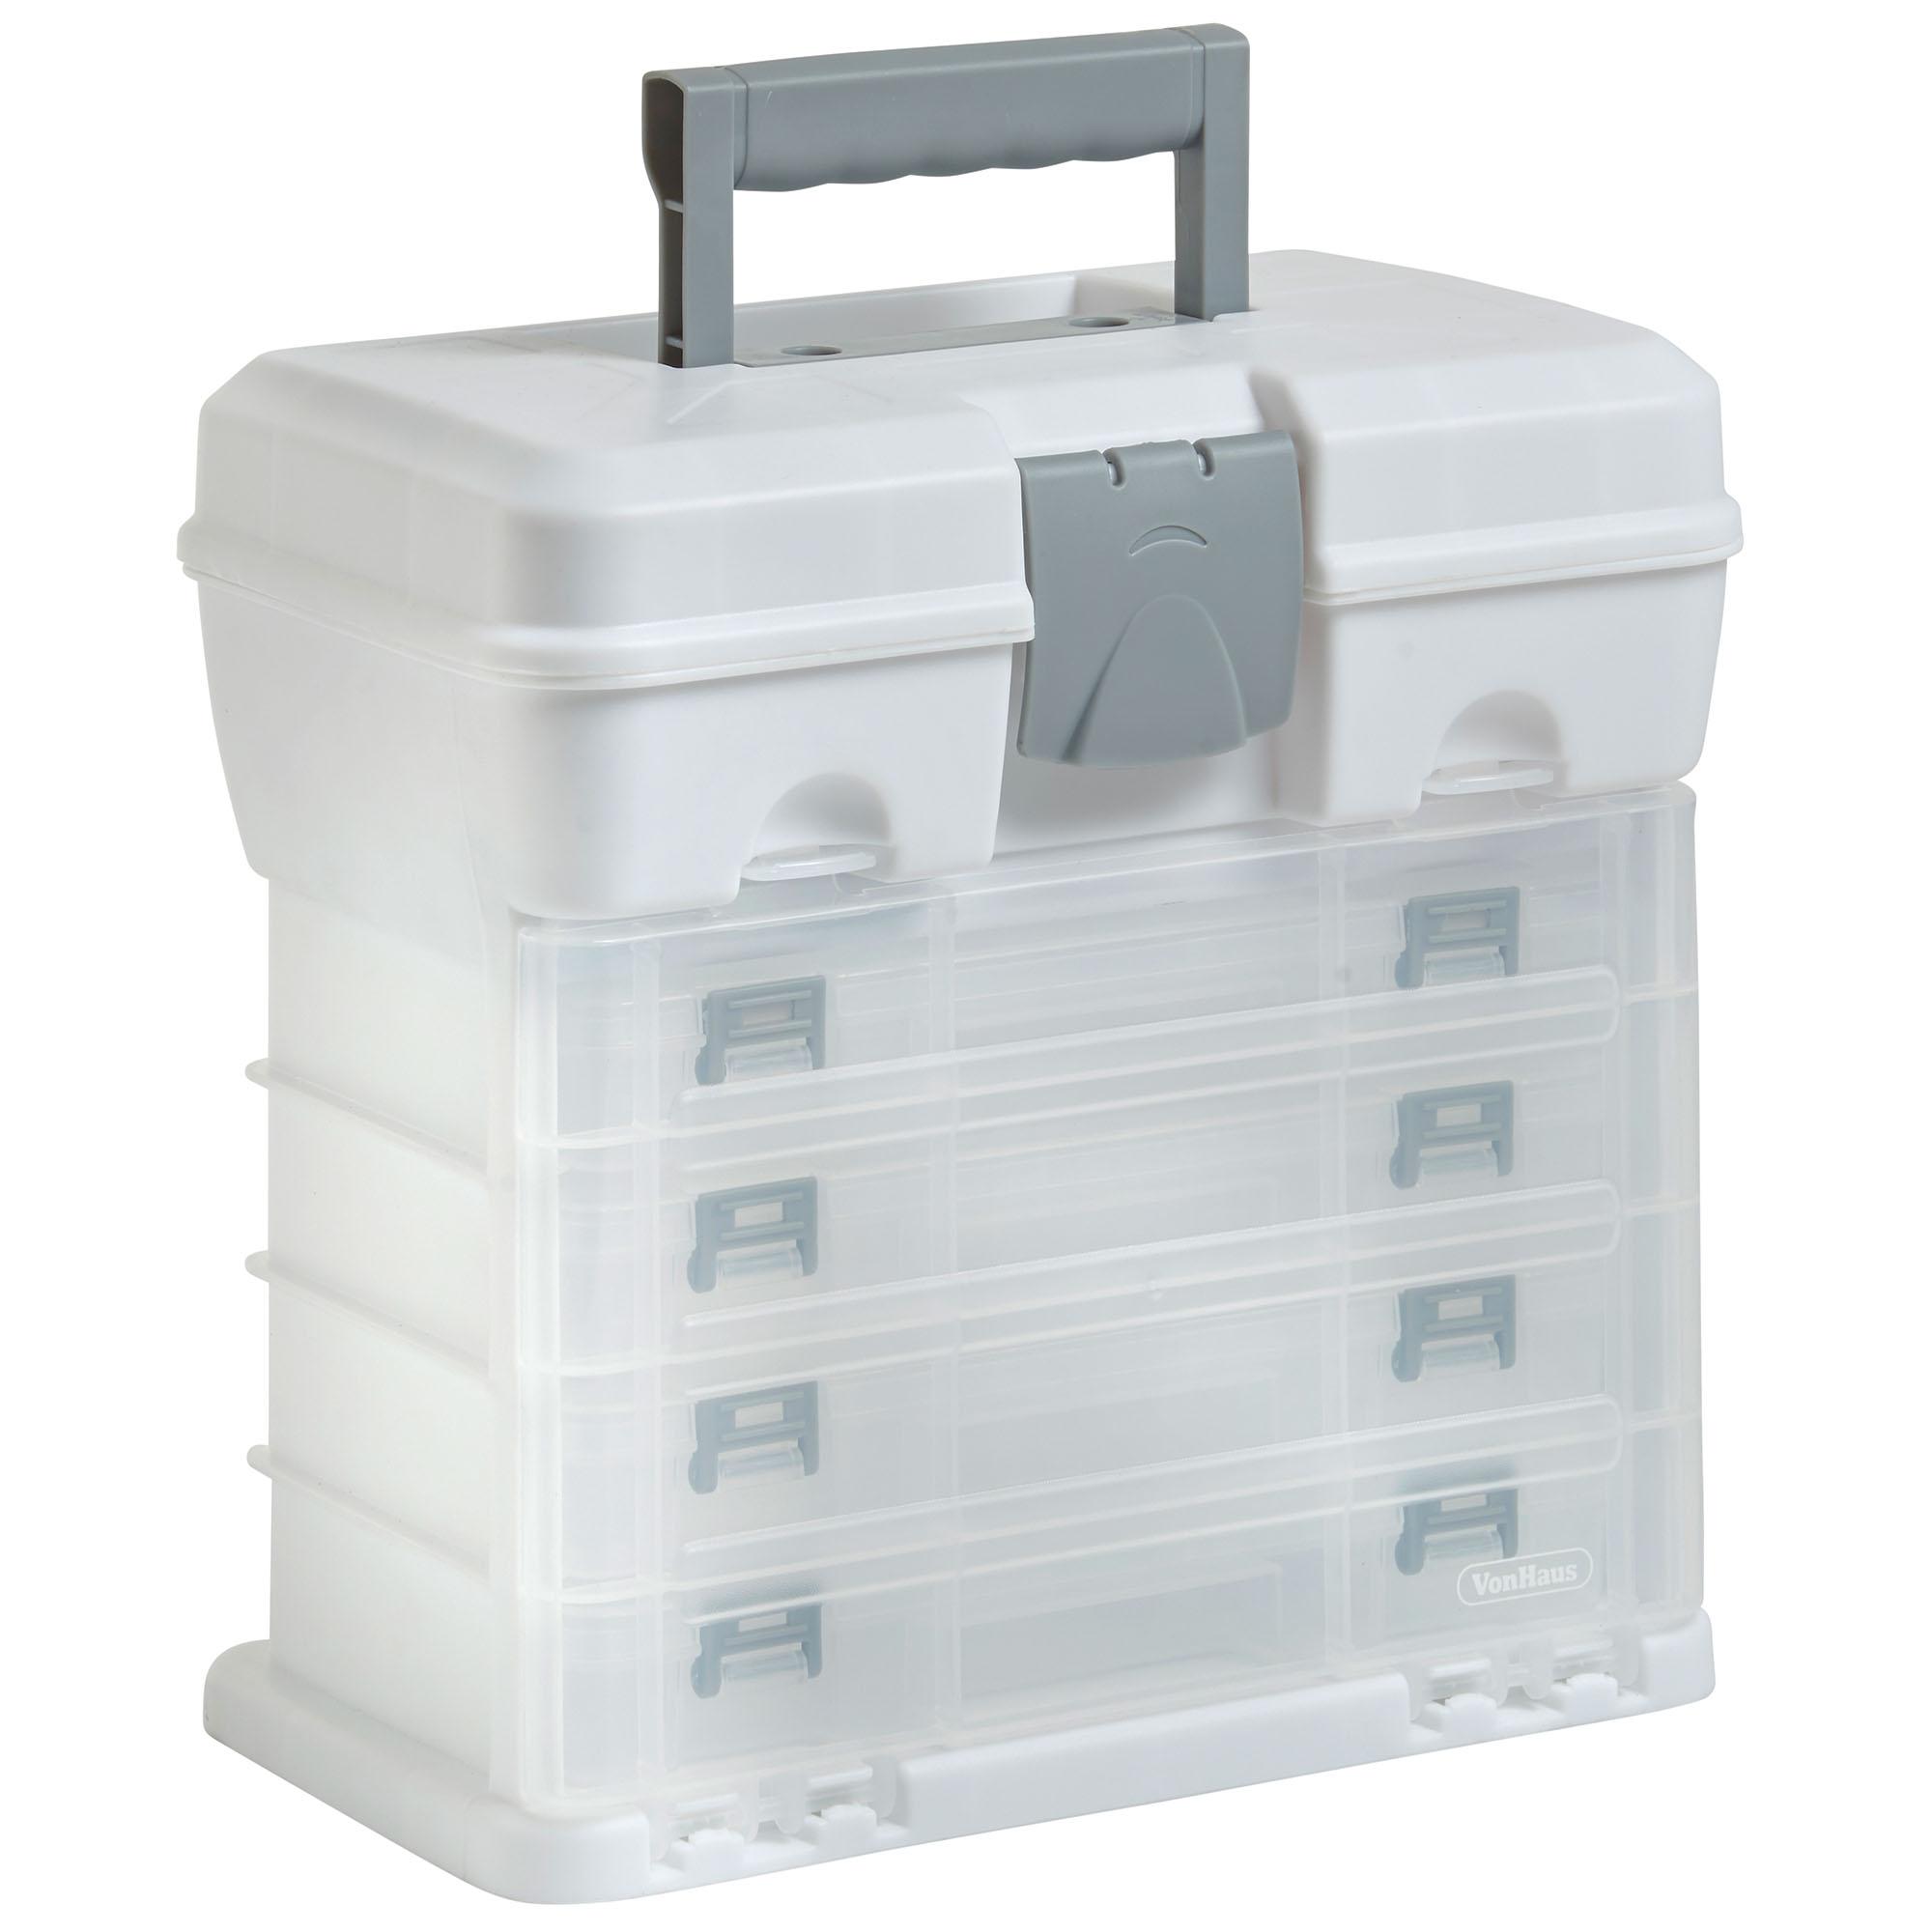 Craft containers with lids - Storage Drawers For Crafts Craft Storage Boxes With Lids Arts And Crafts Storage Containers Craft